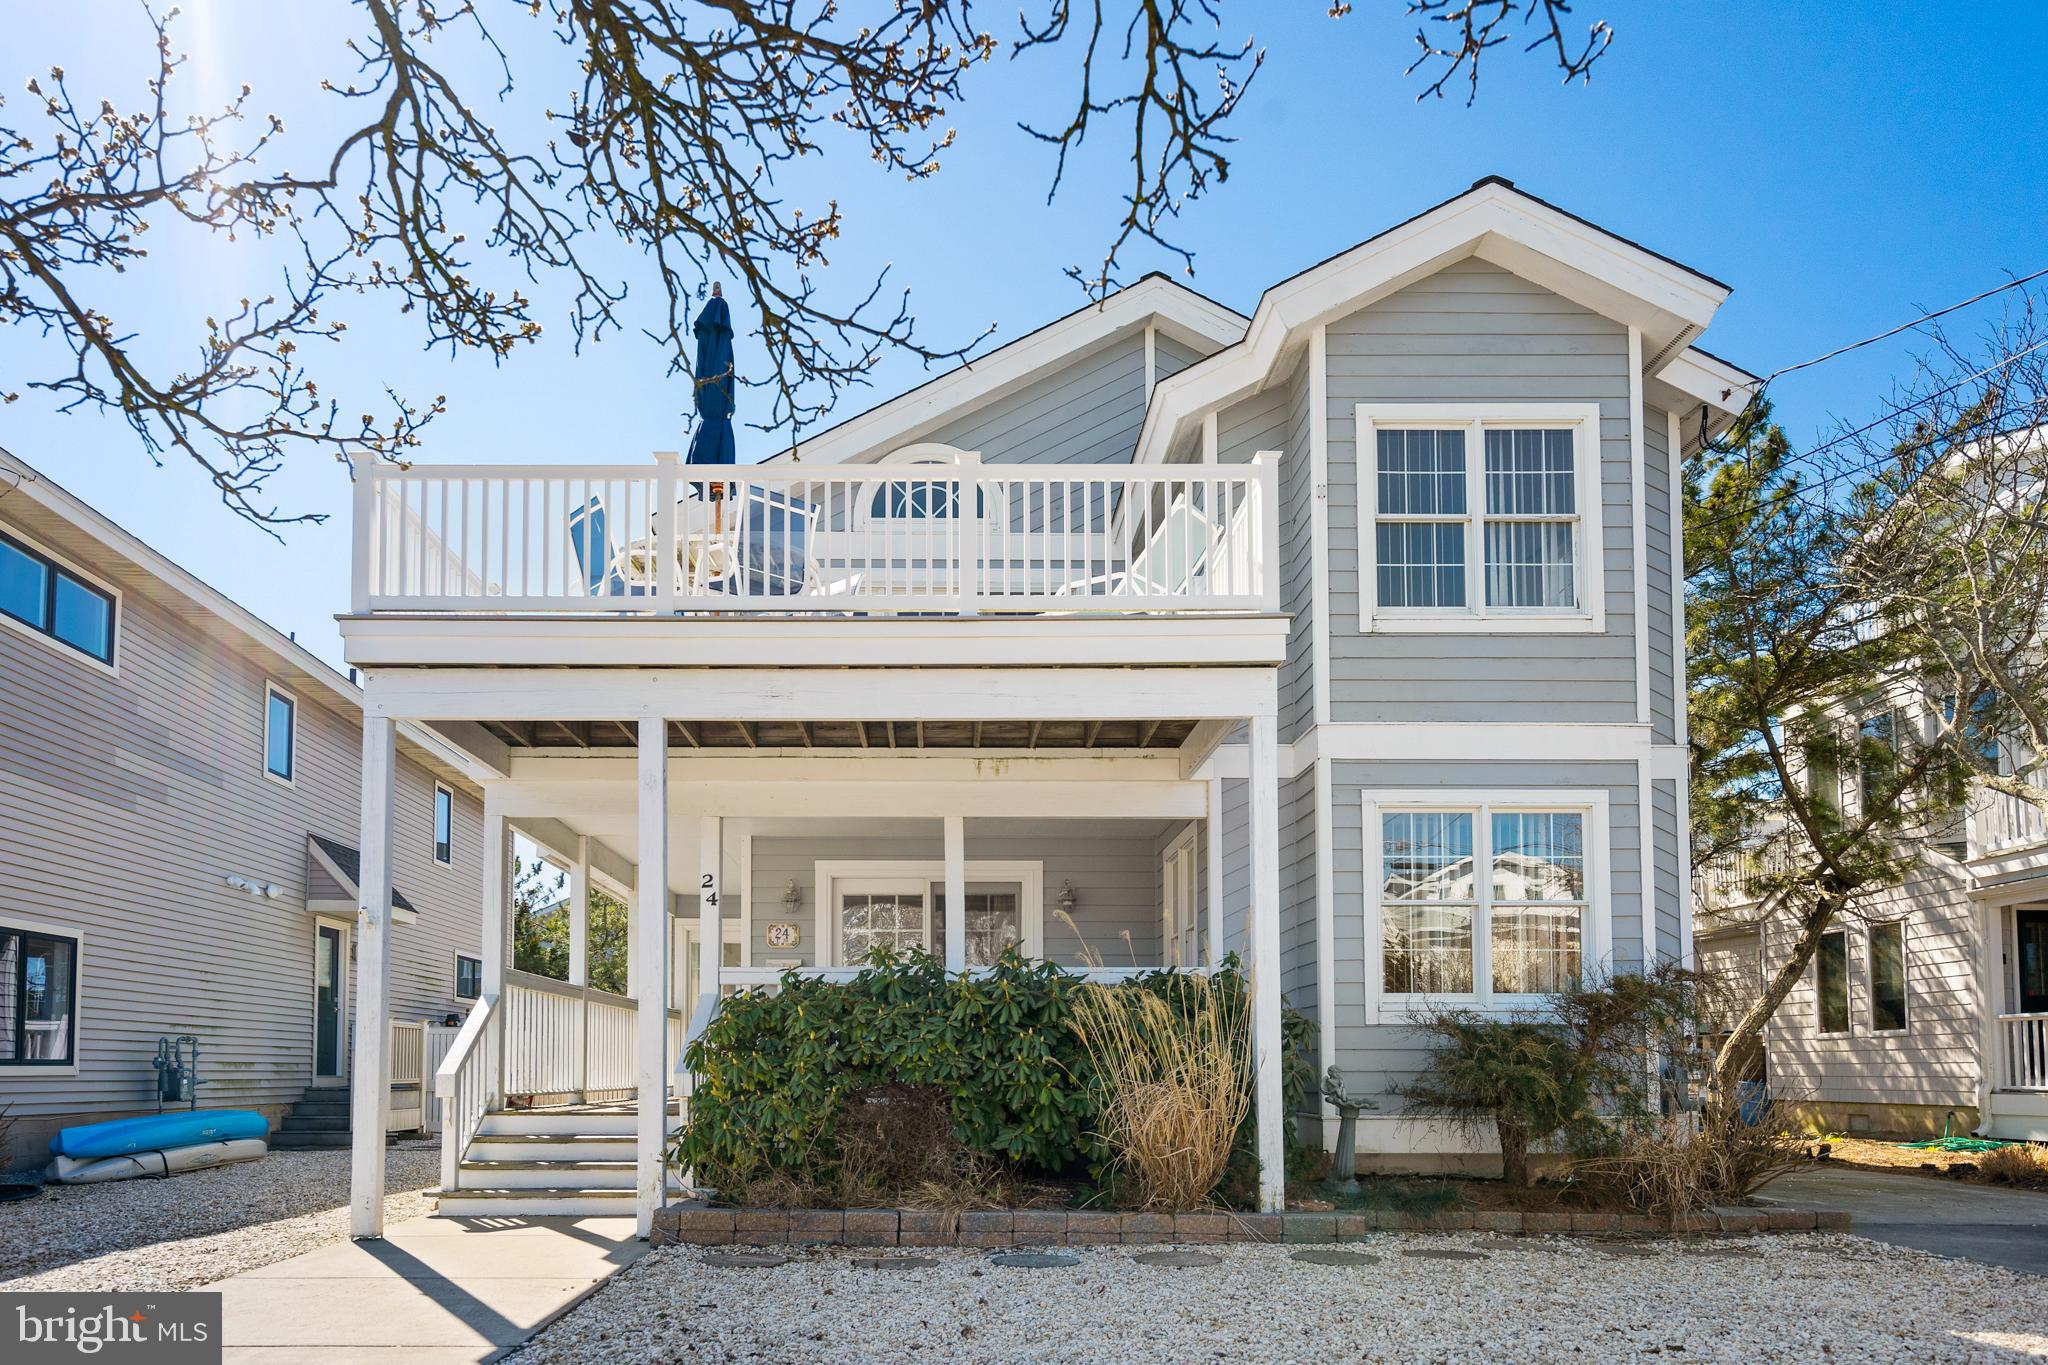 24 E 19TH STREET, AVALON, NJ 08202